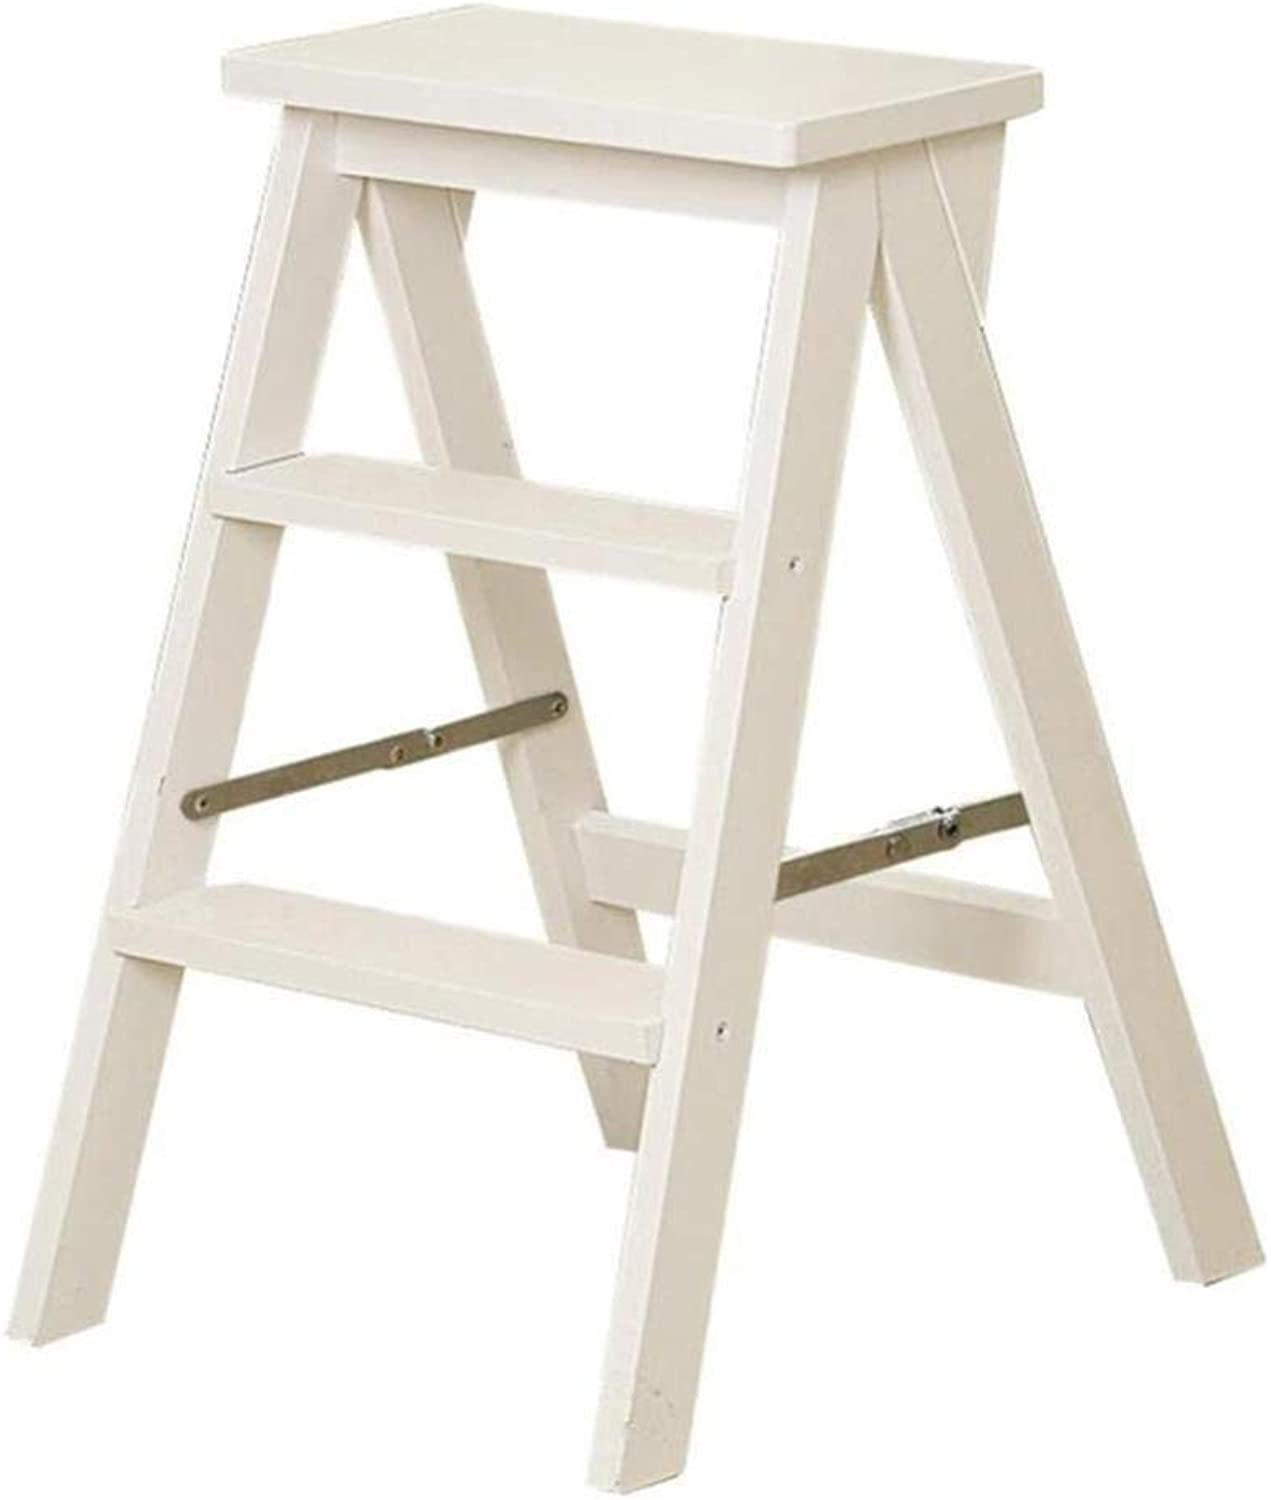 Step Stool Stair Ladder Ladder Folding Ladder Stool Stairs Multifunction Herringbone Ladder Ascend Pedal Save Space Beech Step Stool (color   B)